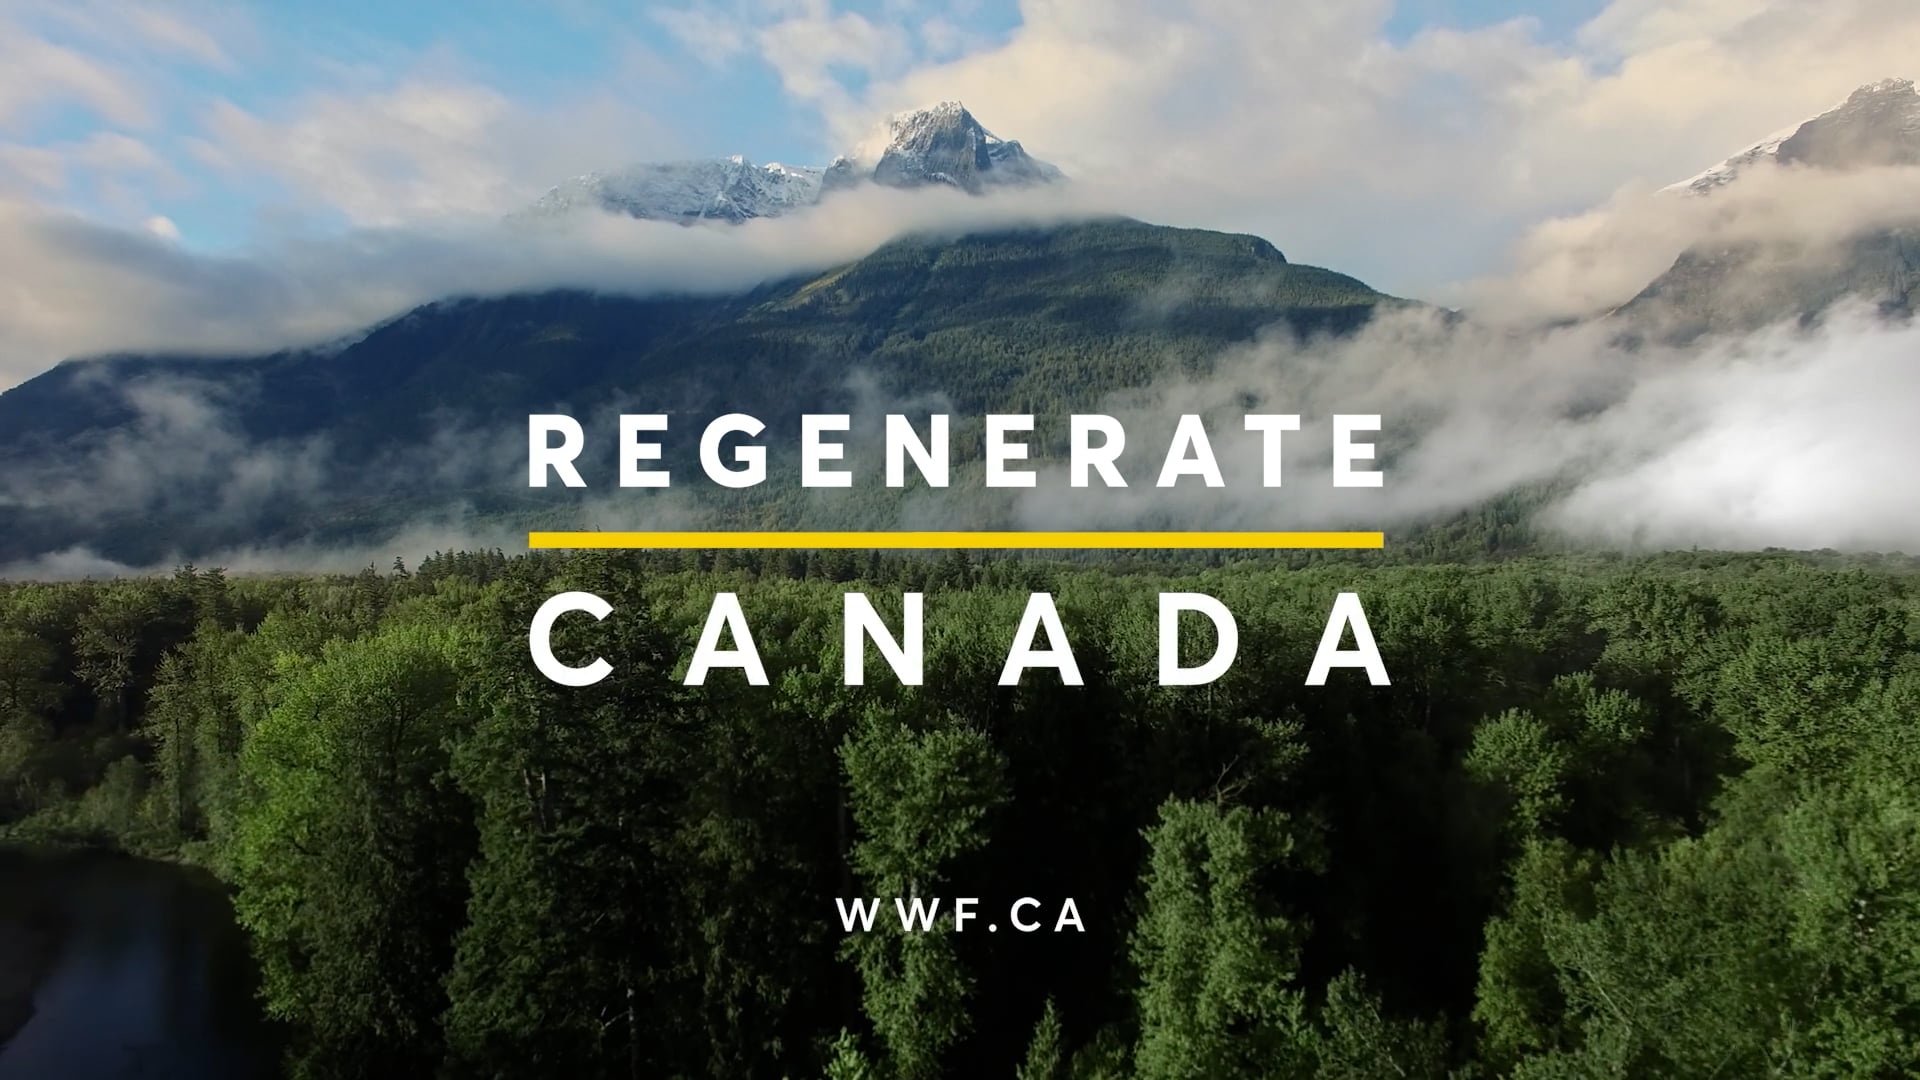 WWF Canada | Our Future Is Irreversible